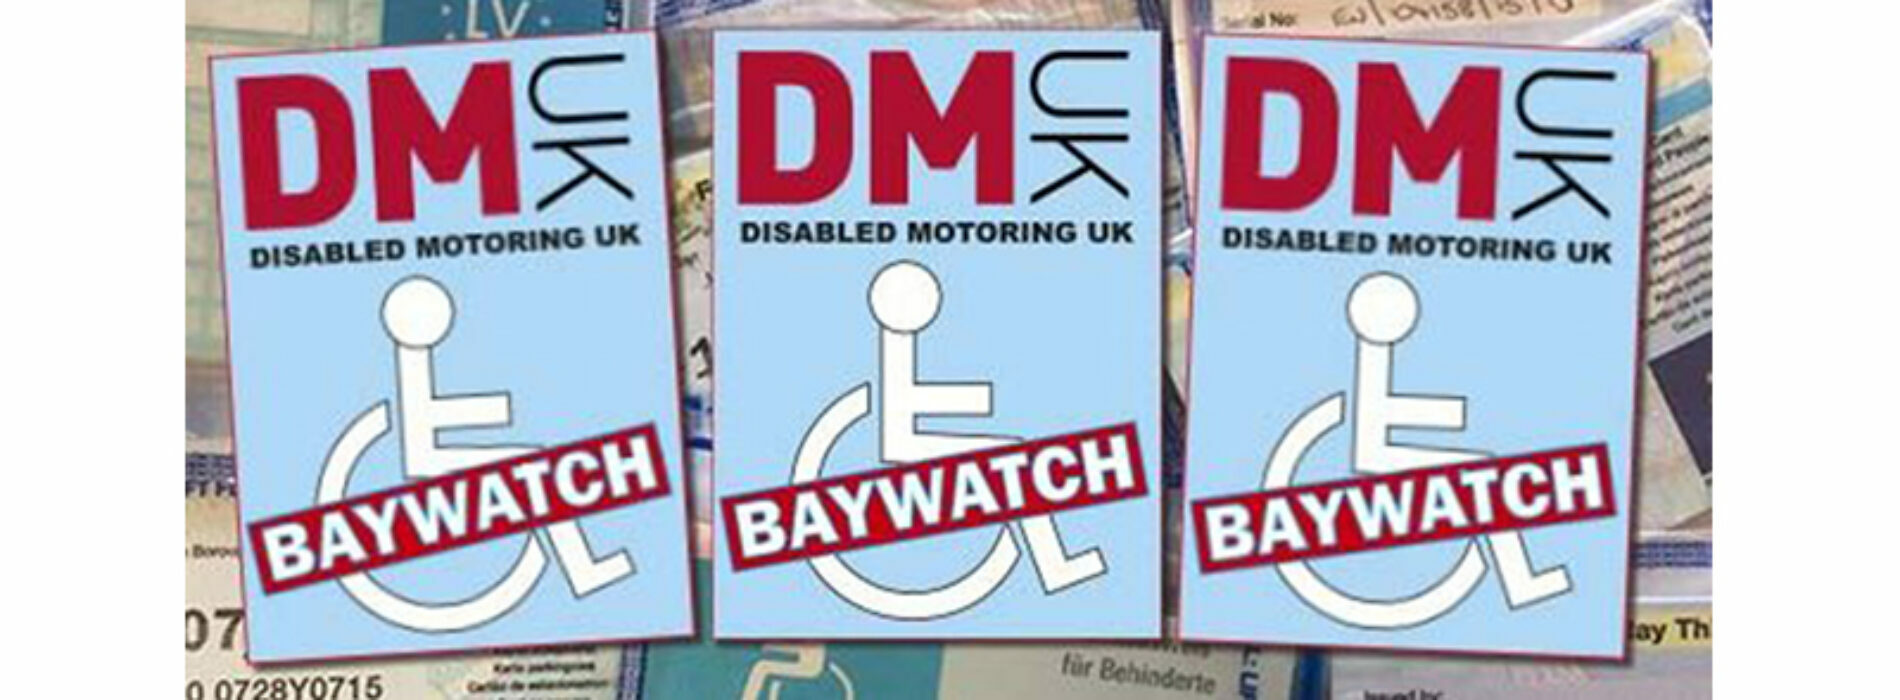 Disabled Motoring UK: Survey says one in five disabled parking bays is abused